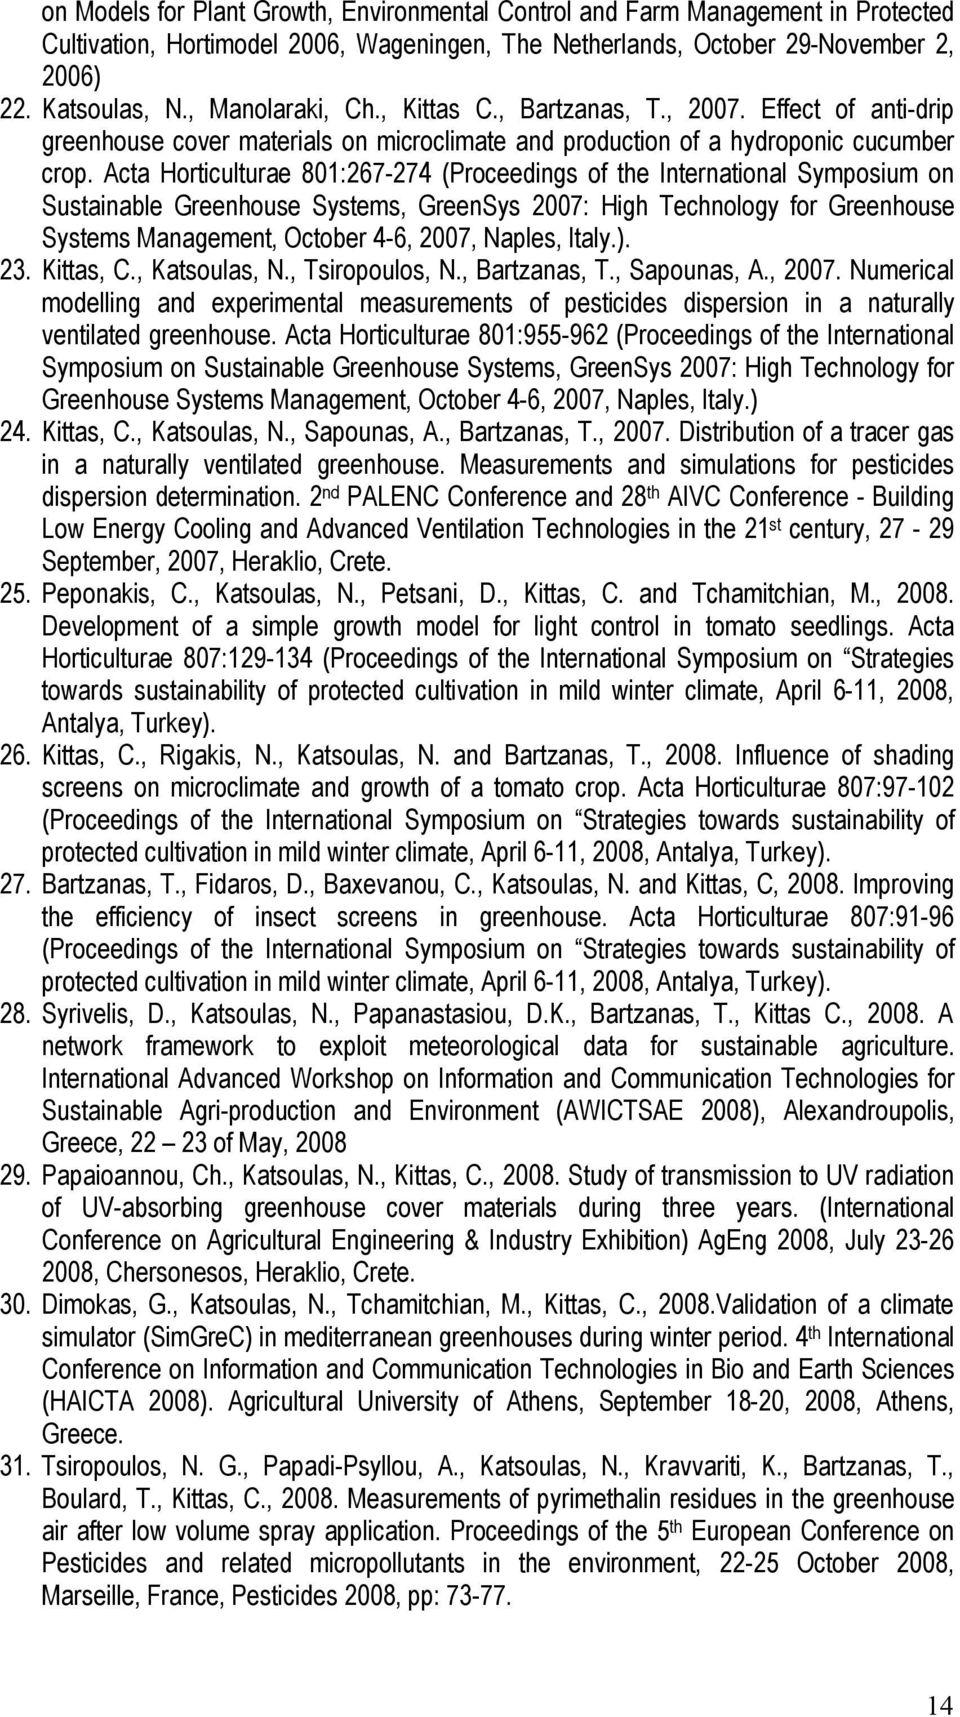 Acta Horticulturae 801:267-274 (Proceedings of the International Symposium on Sustainable Greenhouse Systems, GreenSys 2007: High Technology for Greenhouse Systems Management, October 4-6, 2007,